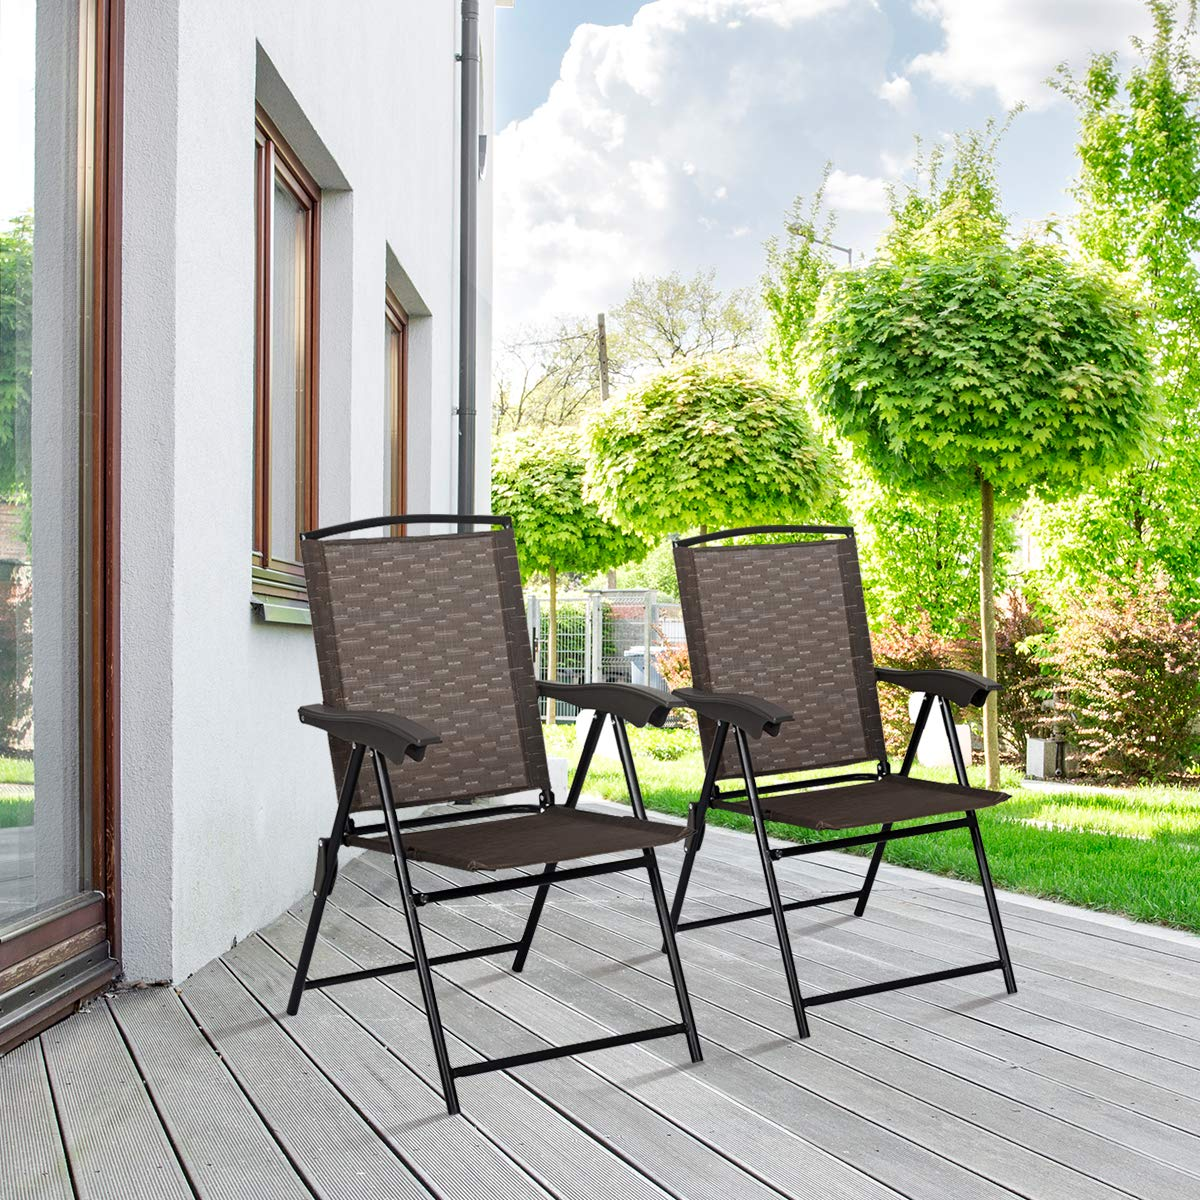 Goplus Sets of 4 Folding Sling Chairs Portable Chairs for Patio Garden Pool Outdoor & Indoor w/Armrests by Goplus (Image #3)